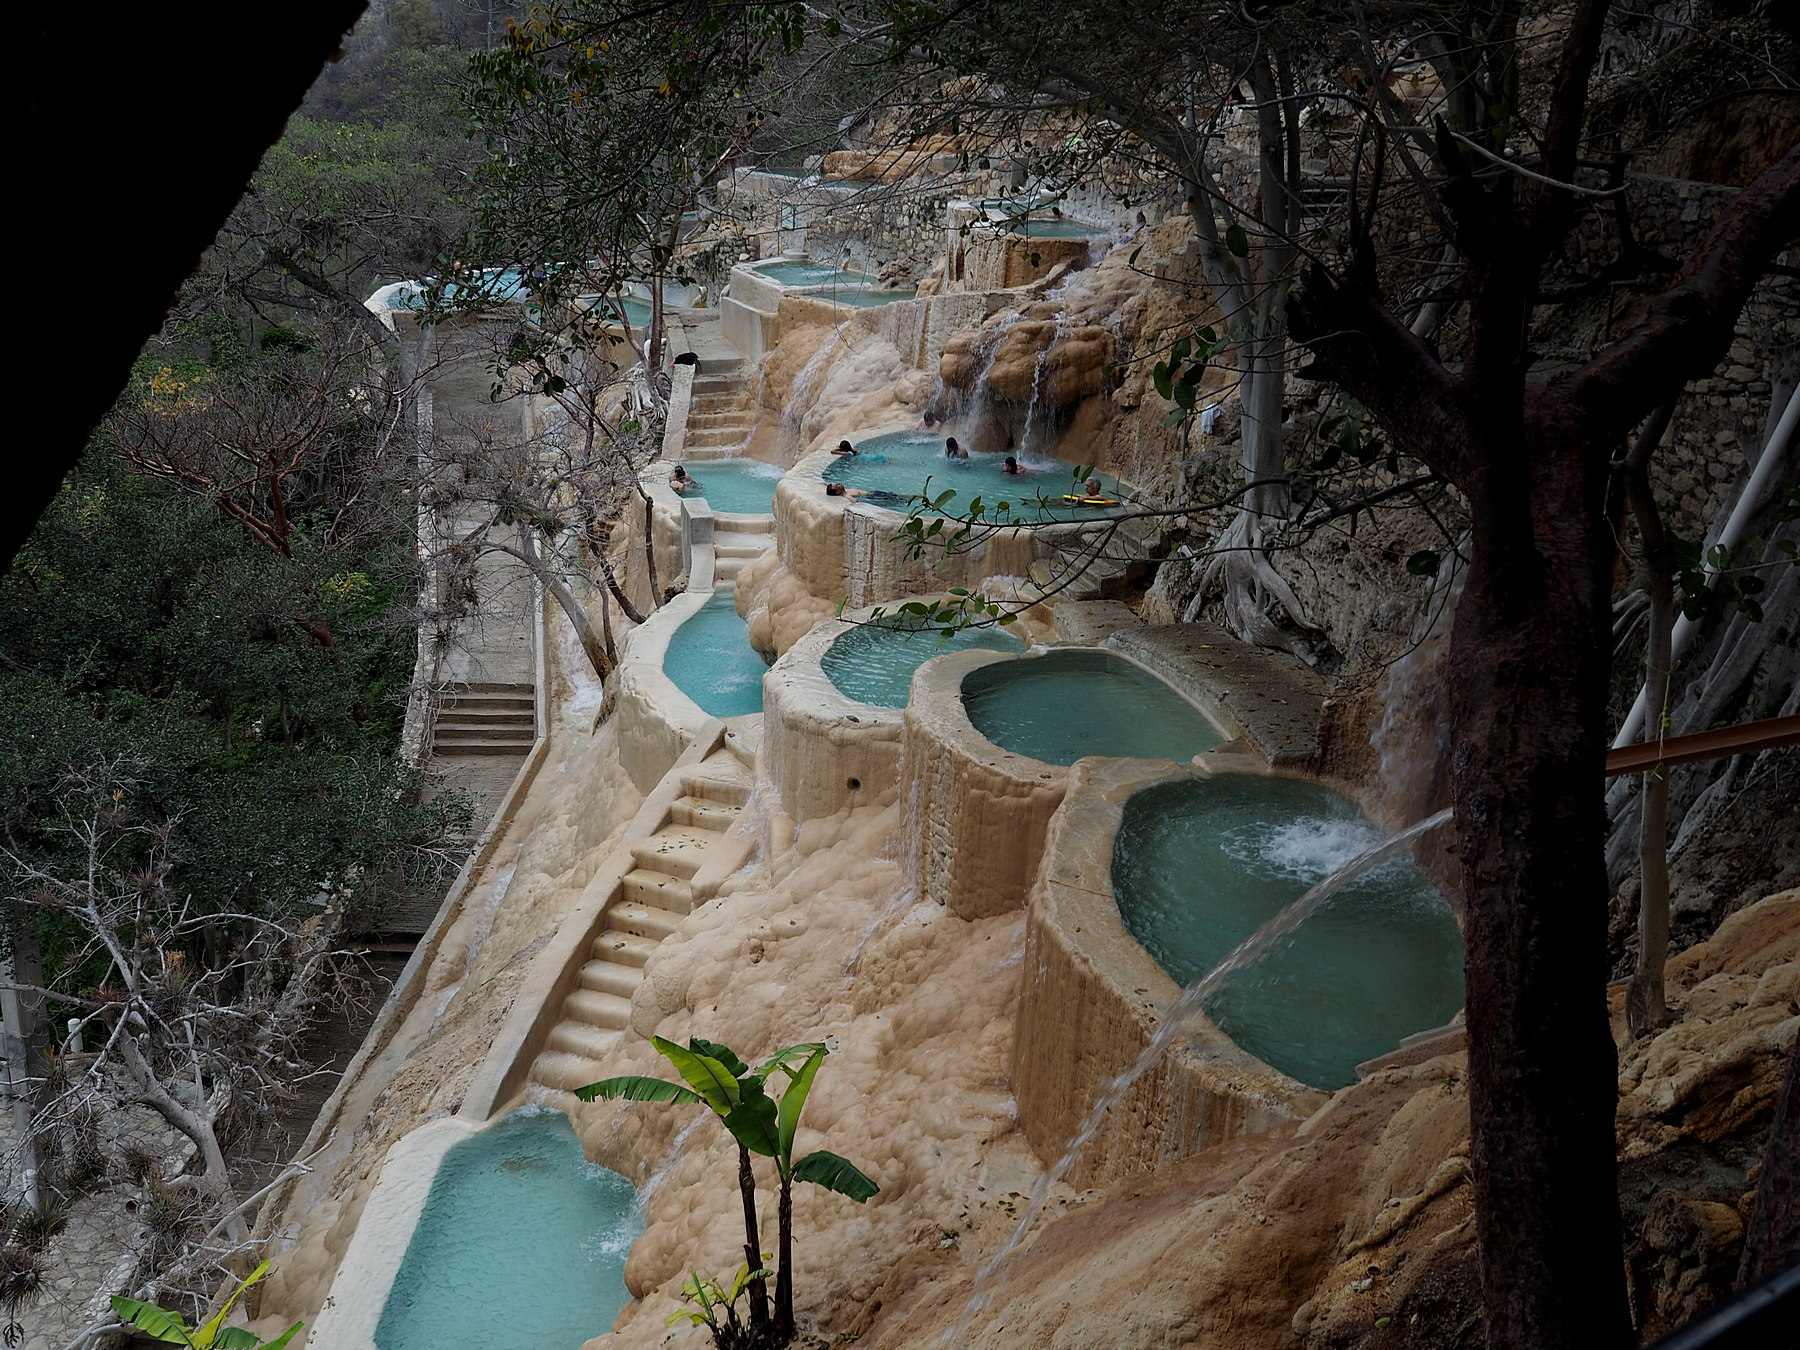 Pools am Berghang